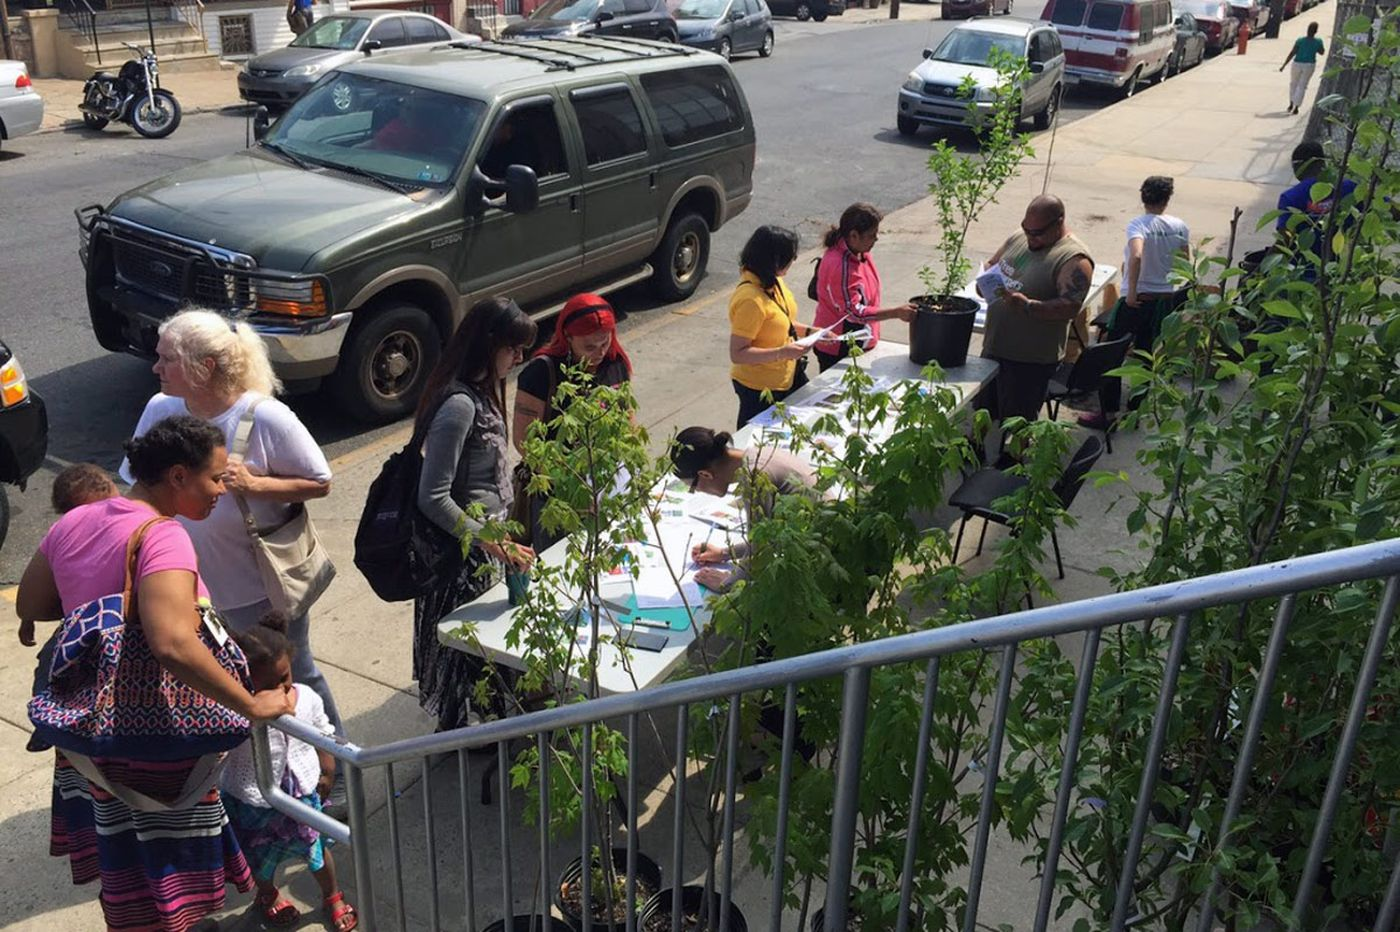 Philly giving away free trees, but with social distancing amid coronavirus